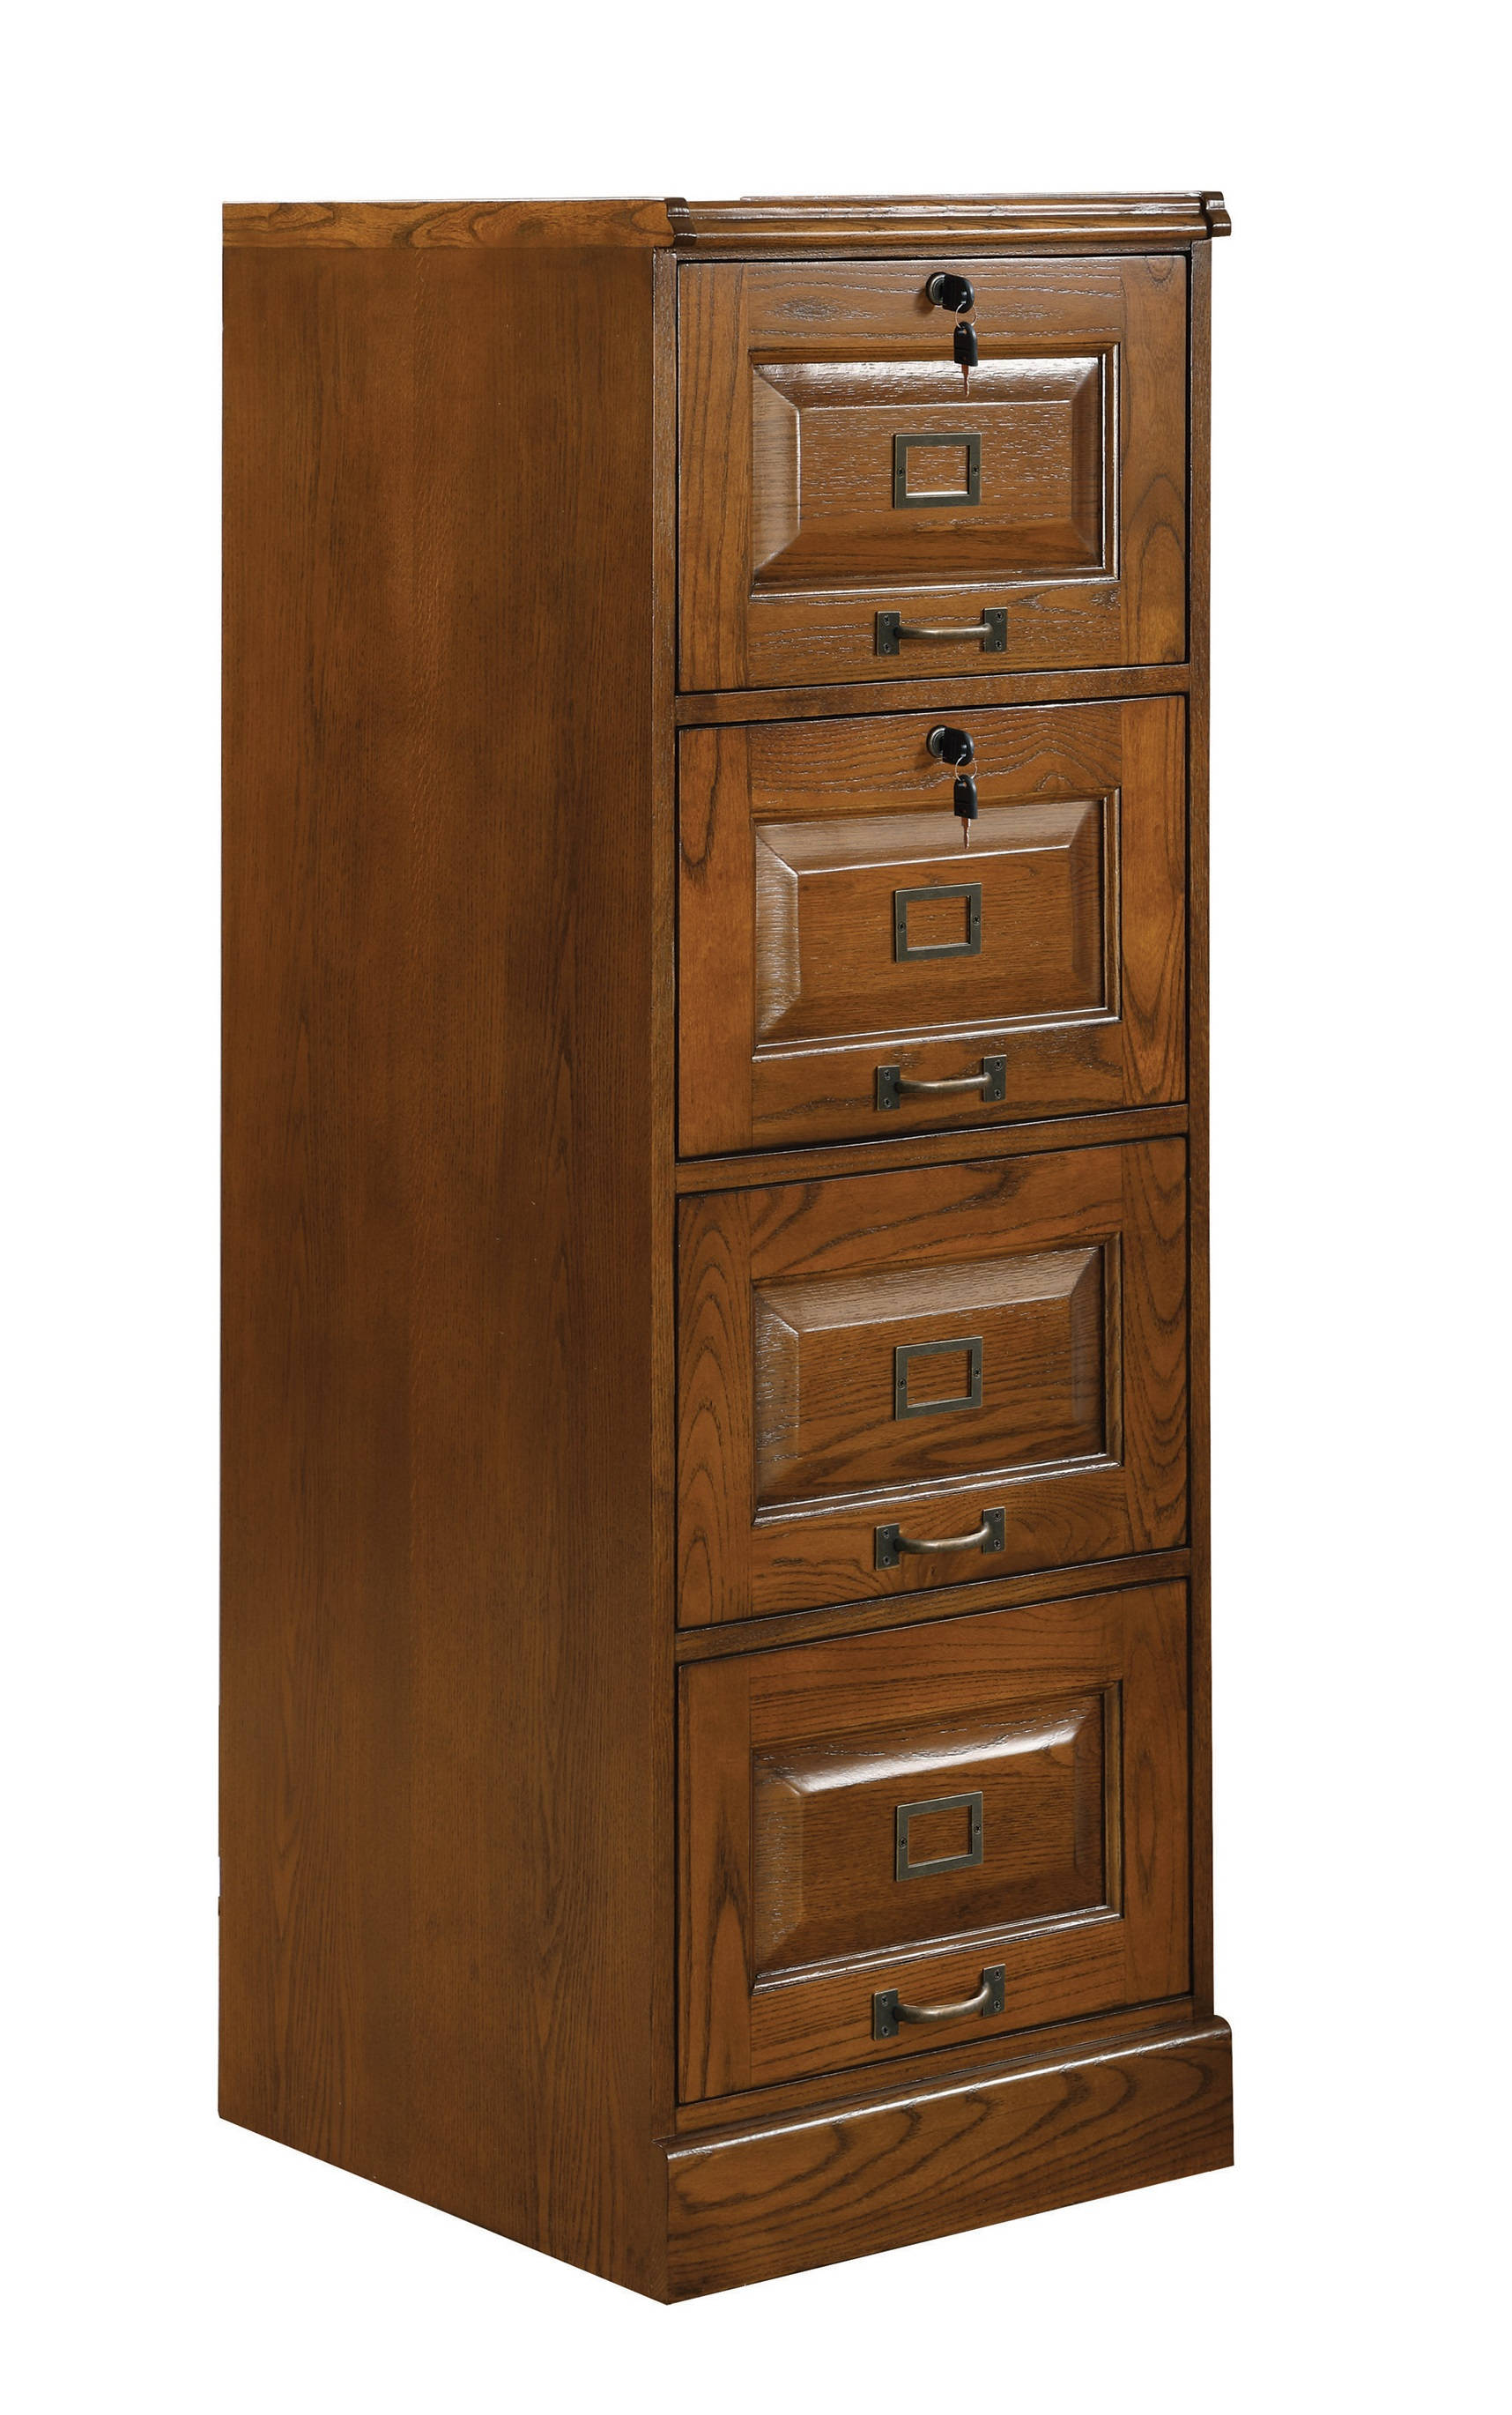 Coaster Furniture Warm Honey Four Drawers File Cabinet The